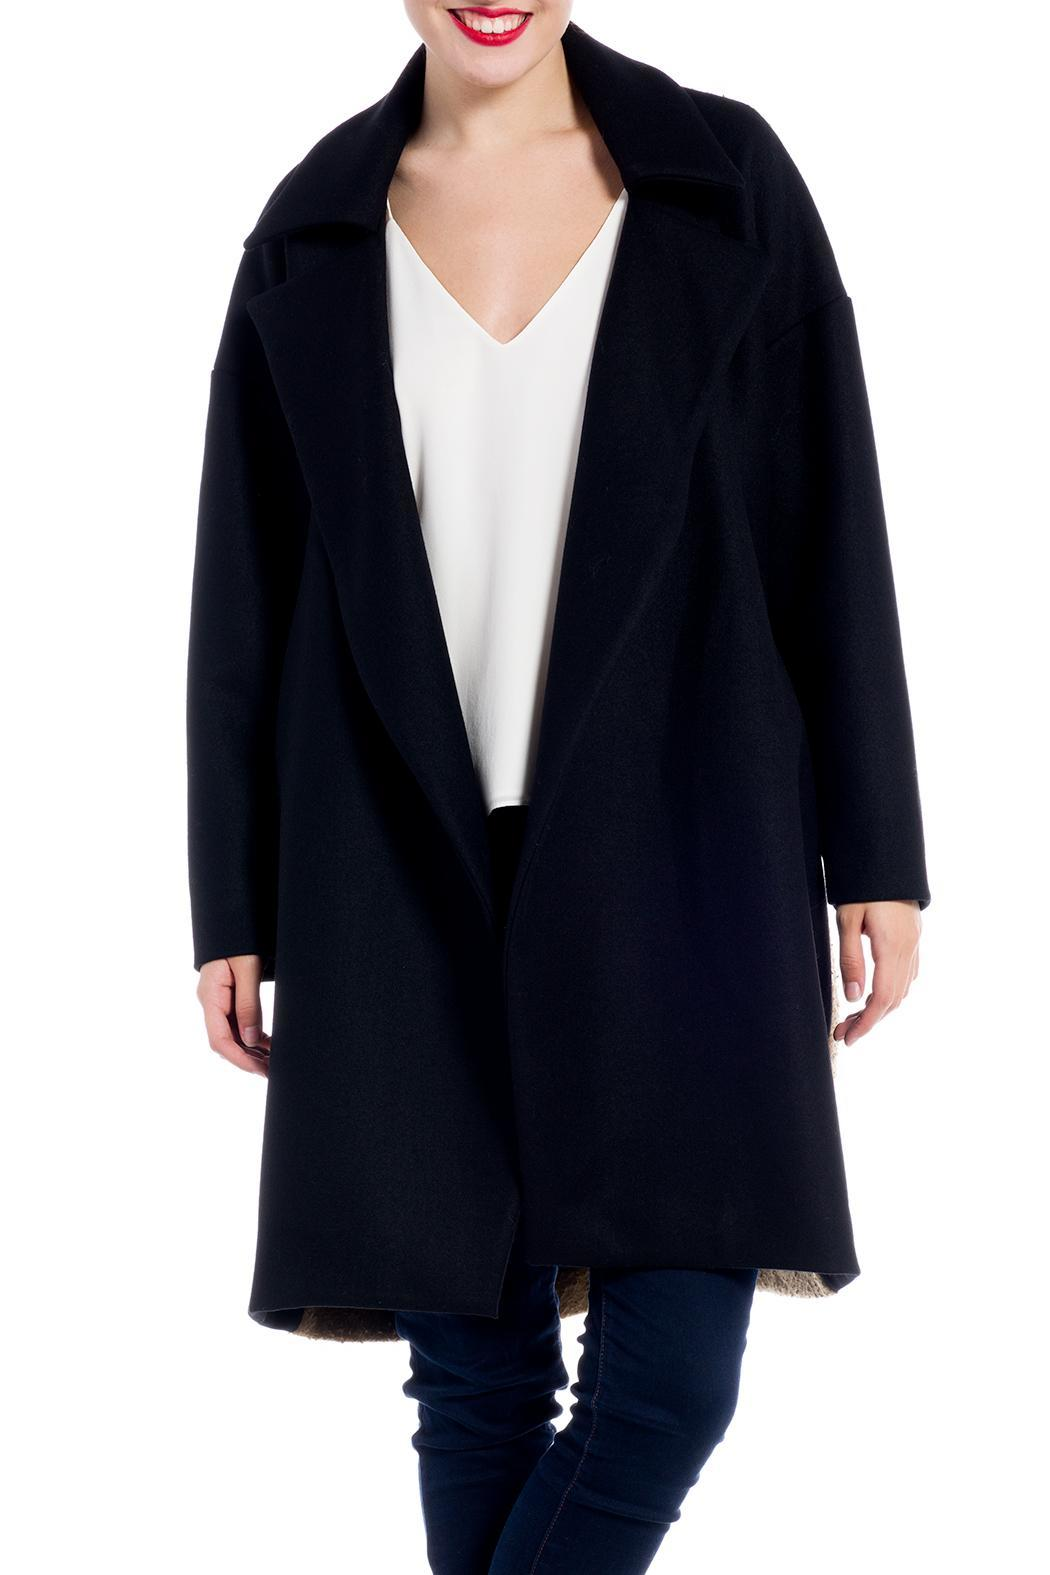 Charlie May Wool Felt Trench Coat - Front Full Image